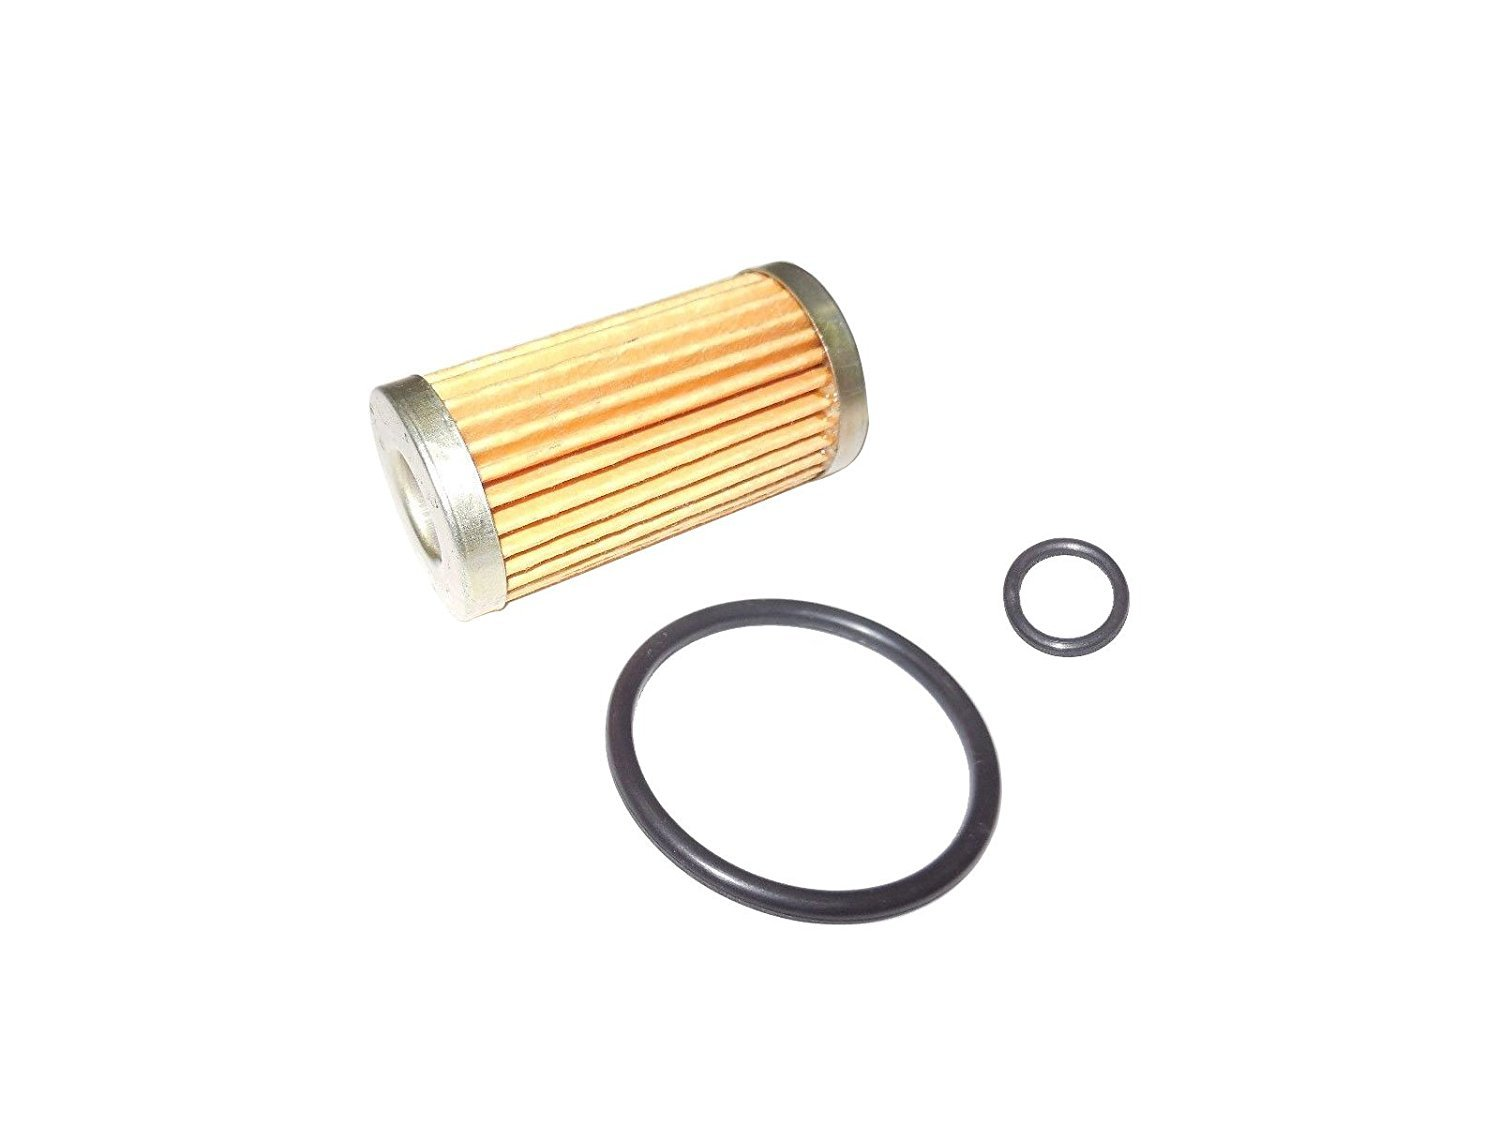 New Cub Cadet Fuel Filter with O-Ring 7234 7235 7253 7260 7265 7272 7273 7274